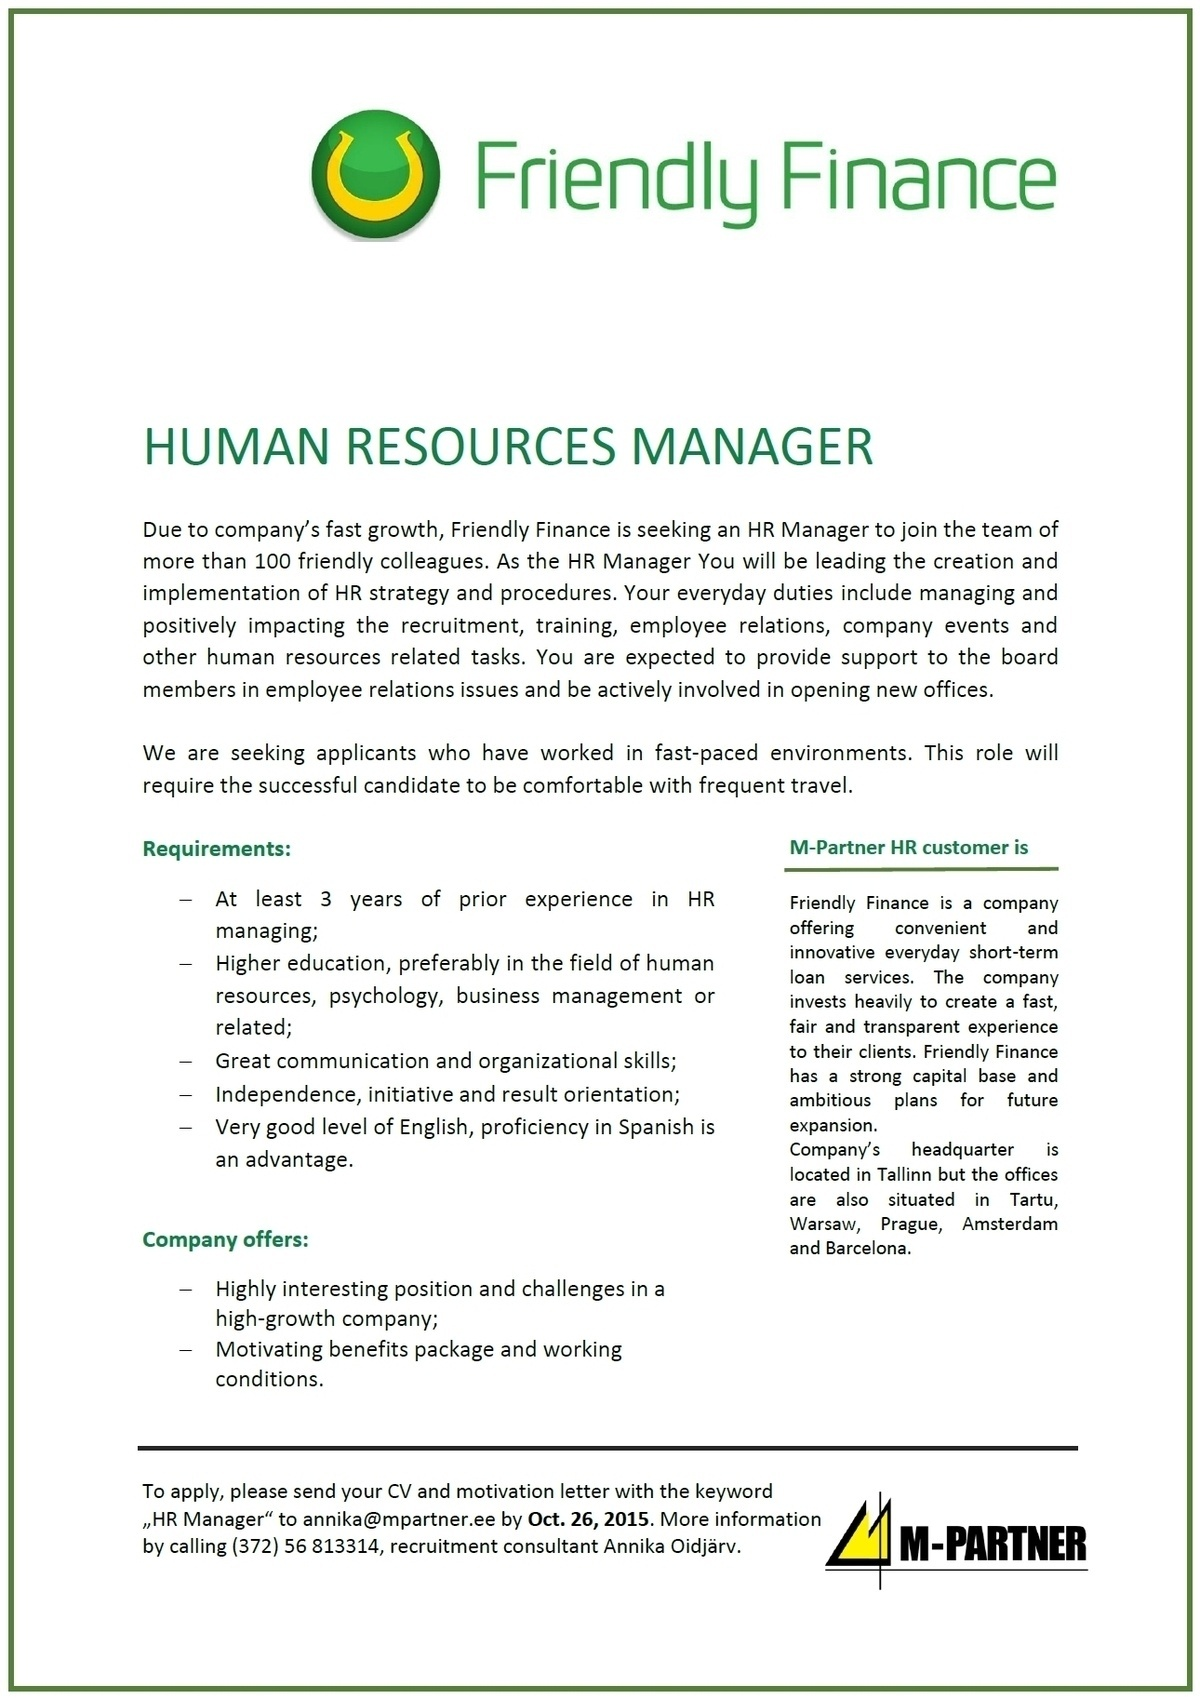 cv of hr manager Resume samples preparing an effective resume is a difficult and time-consuming task this handout contains resume examples that will help you get started different.